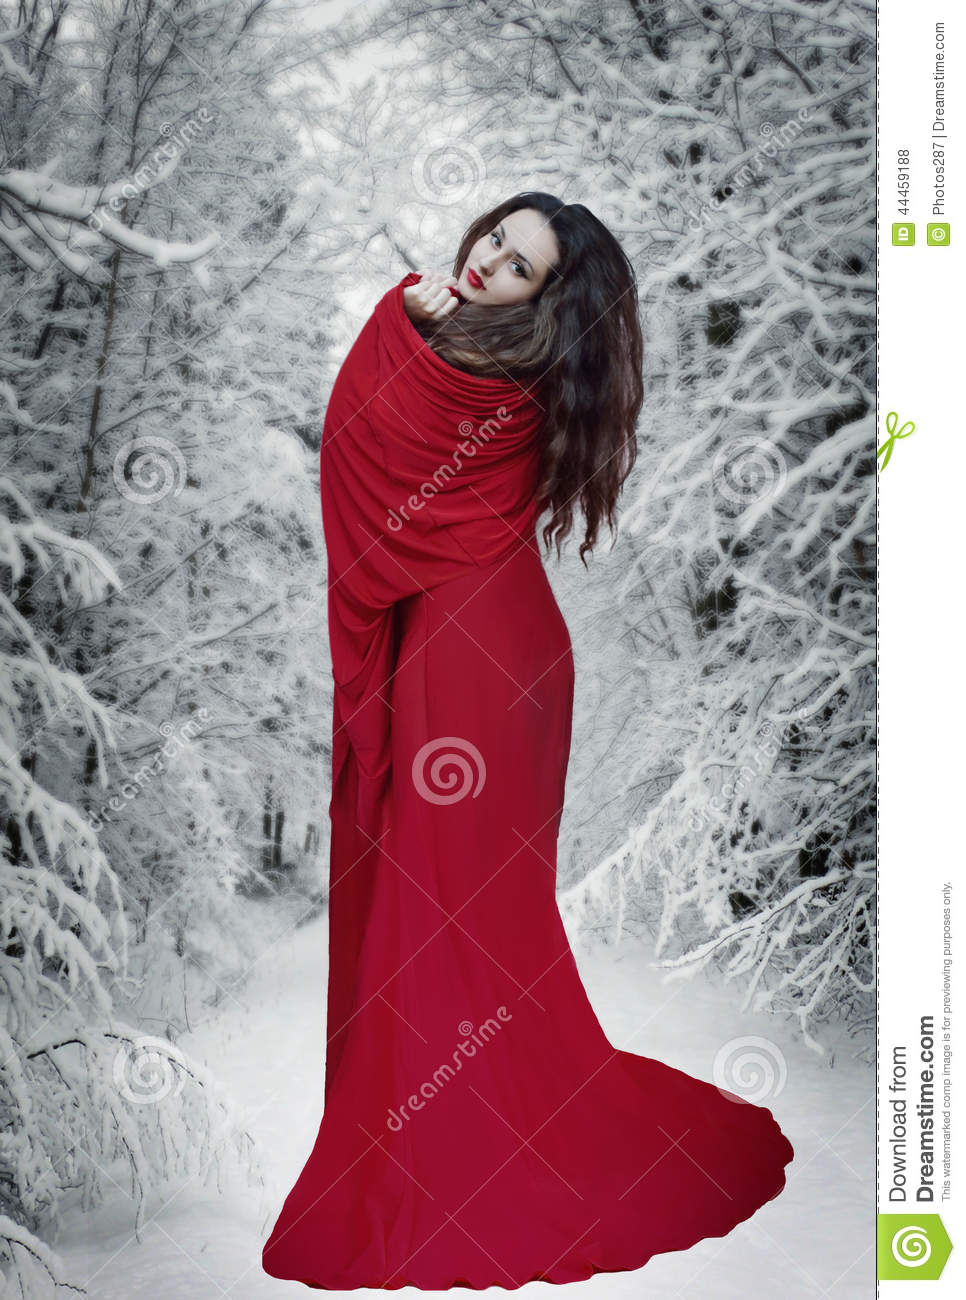 Book Cover Watercolor Dress : Mysterious fantasy woman in red dress forest at snow